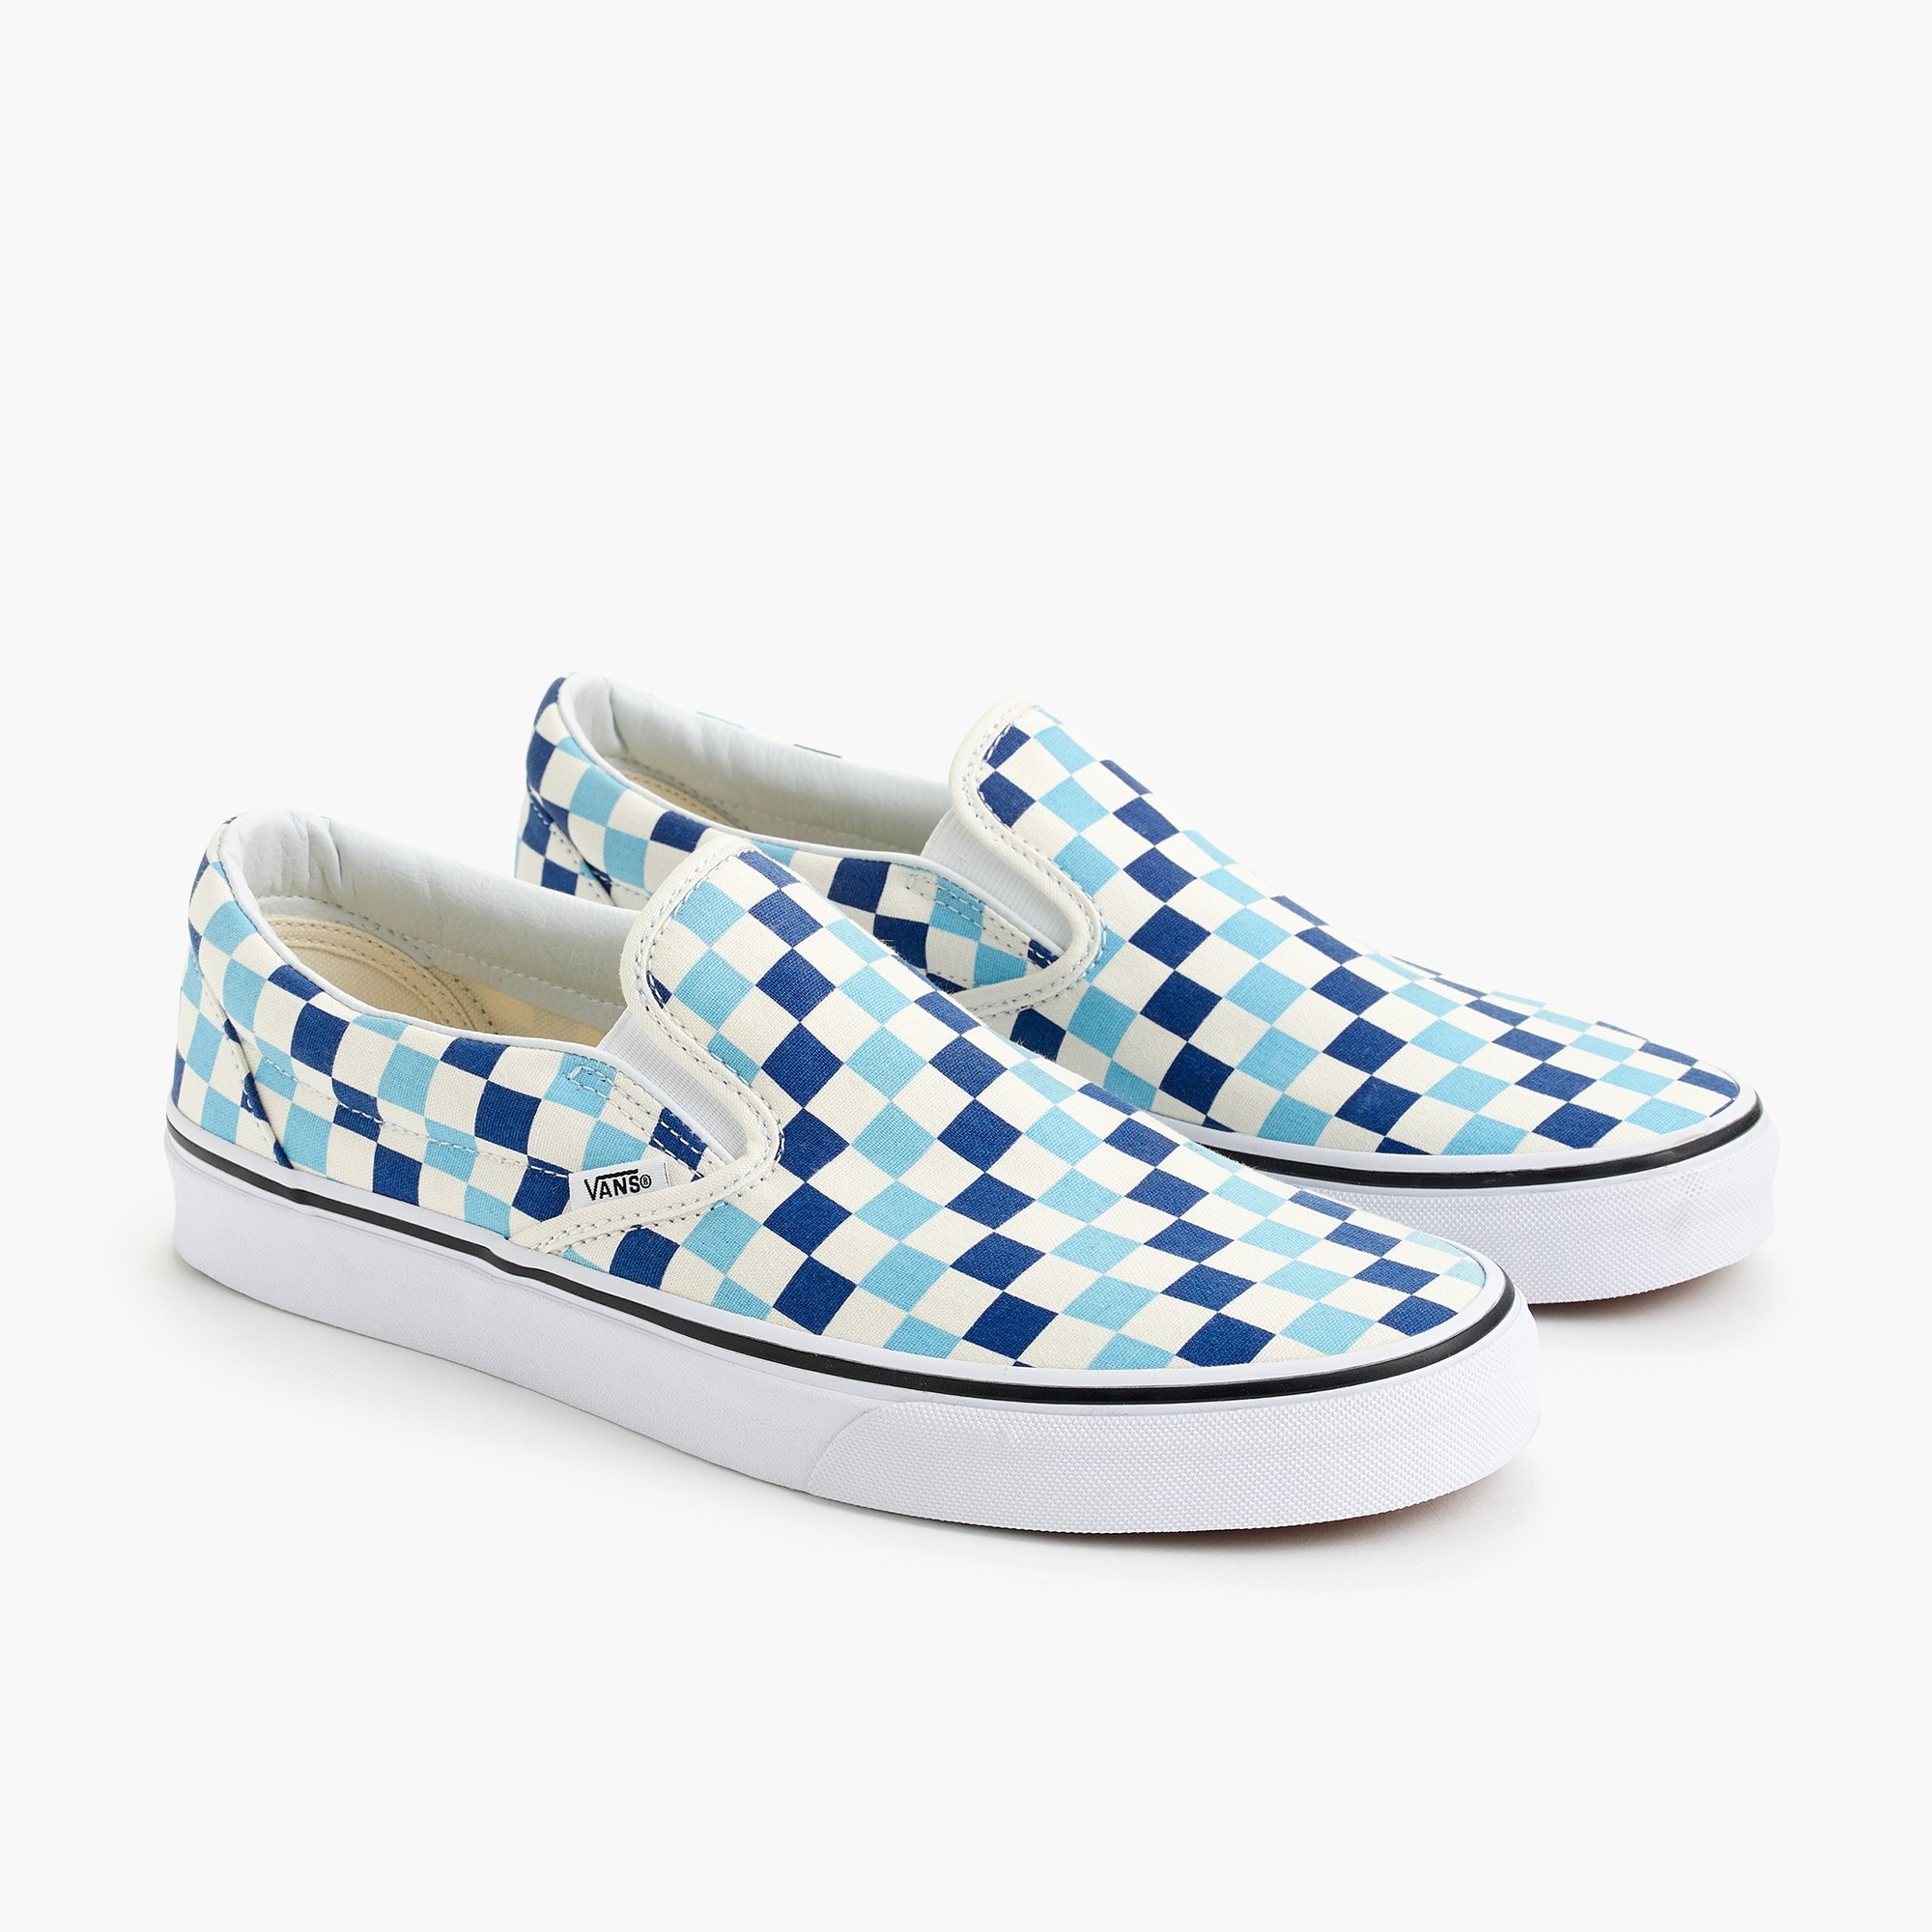 mens Vans® slip-on sneakers in blue checkerboard